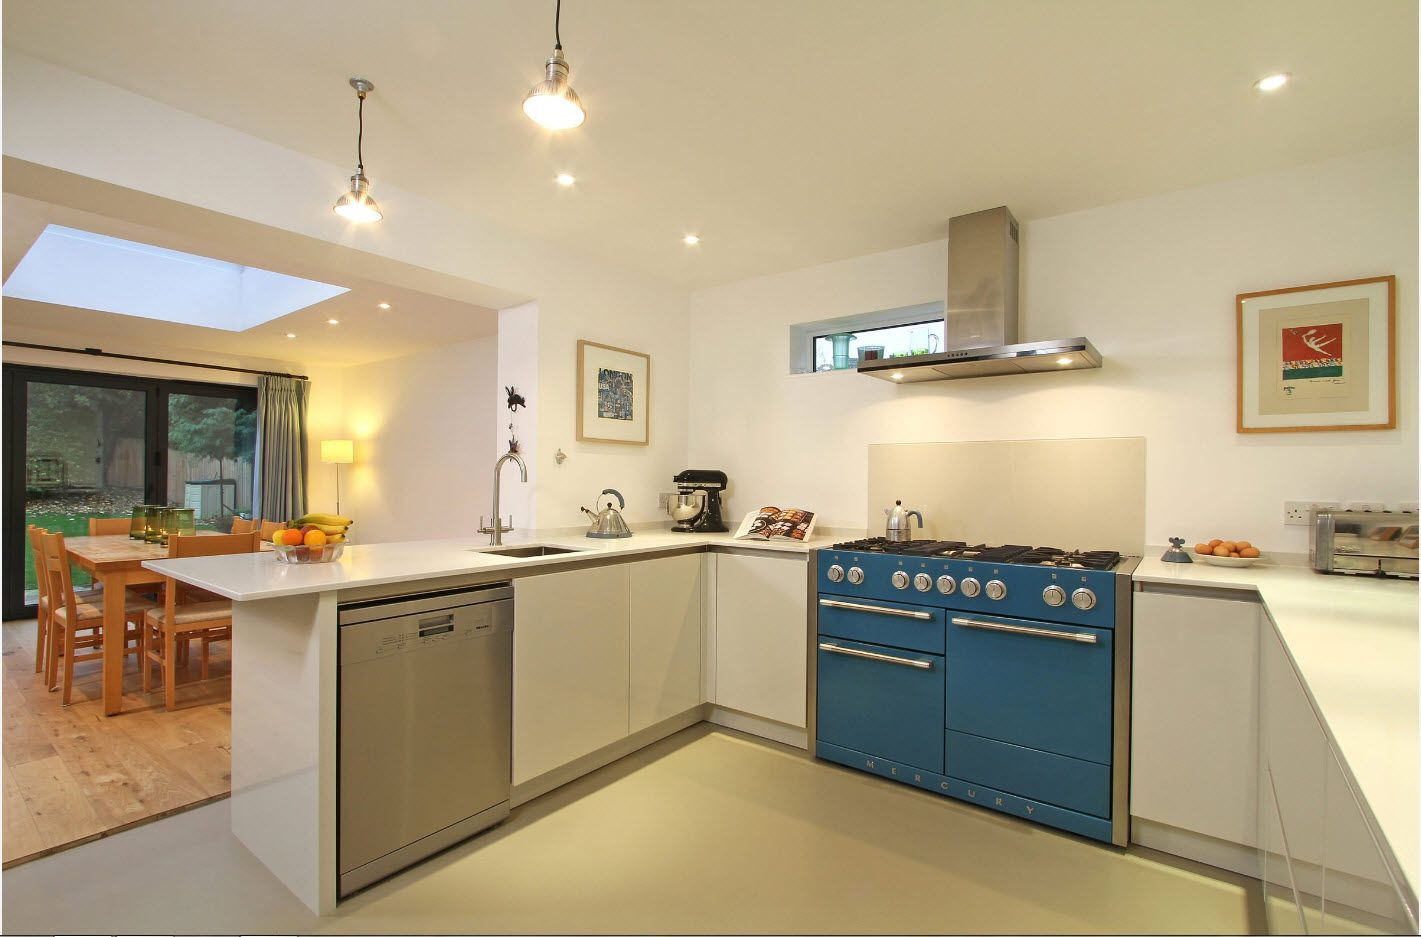 Blue oven and dishwasher as a bright stains in the Classic style interior of the kitchen